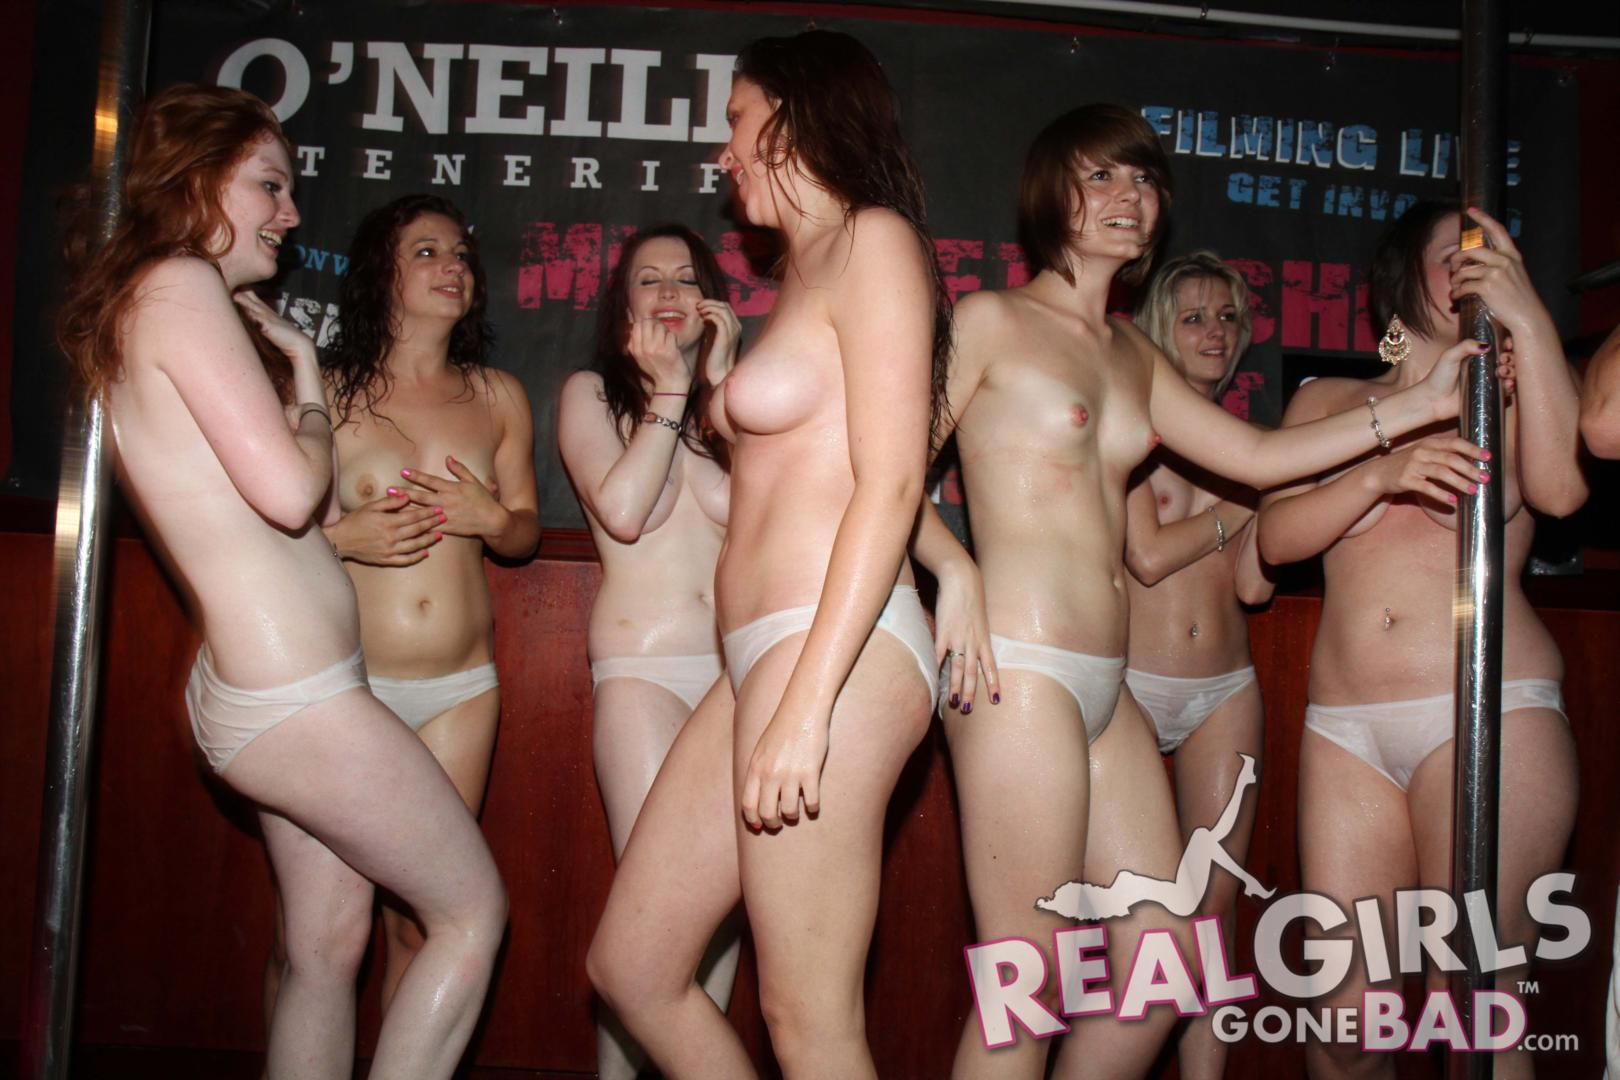 Real Girls Gone Bad - Wet T-Shirt Contest 21